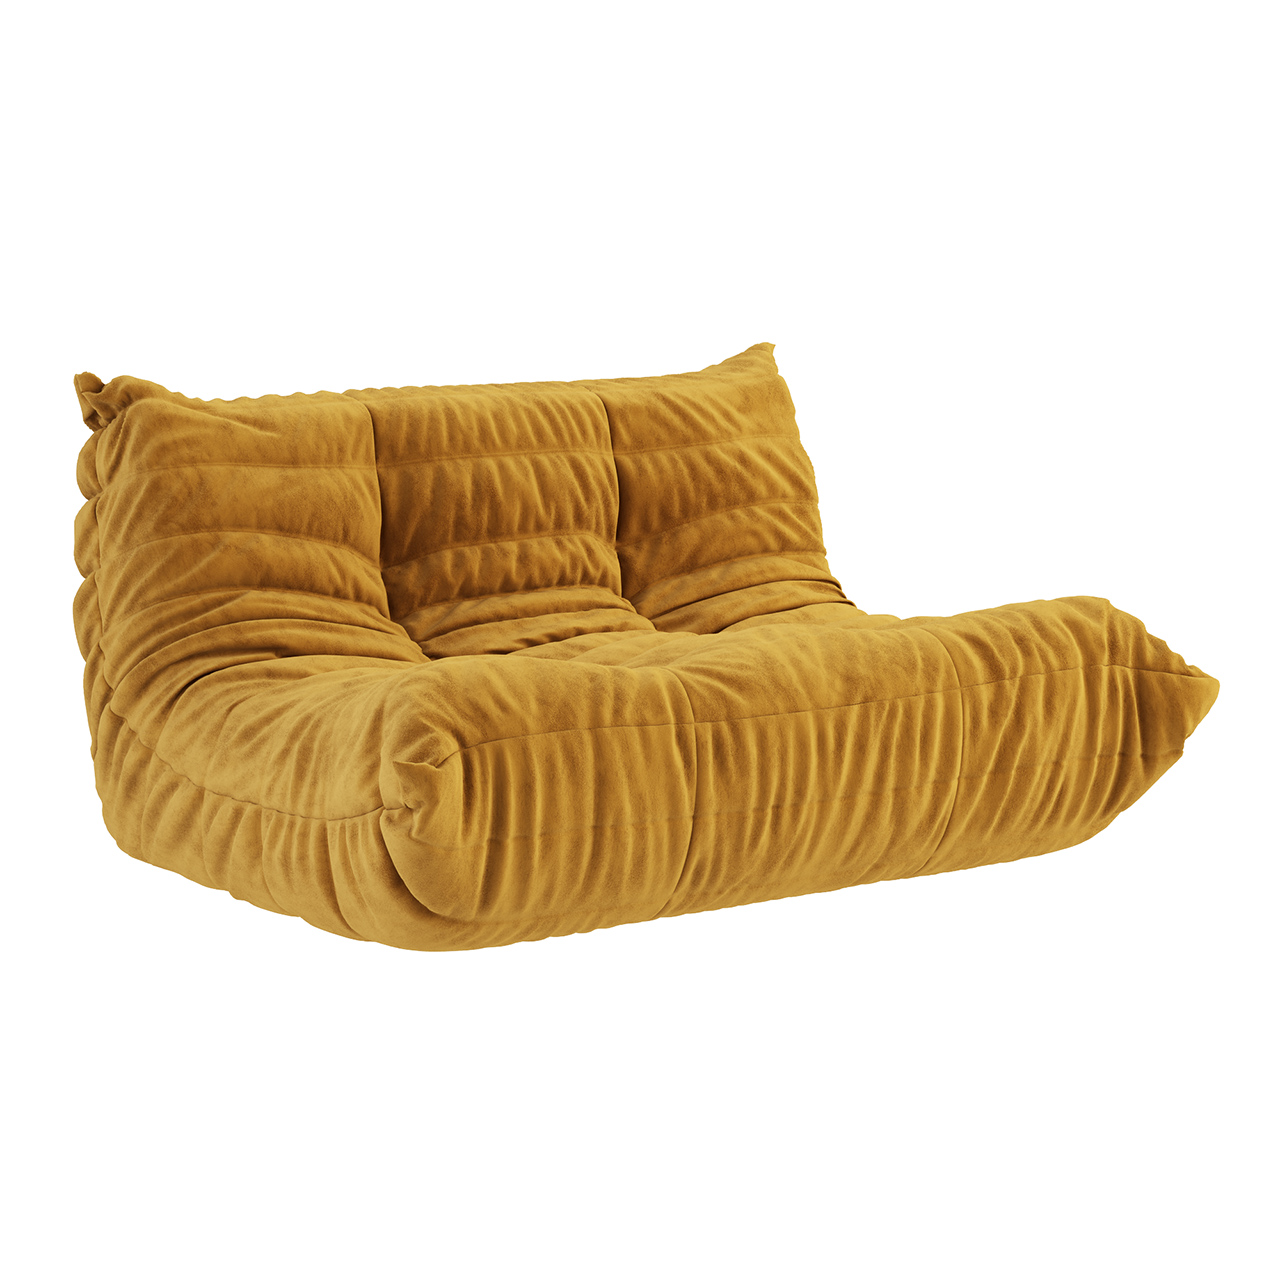 Full Size of Ligne Roset Togo Knockoff Sofa Cost Sessel Replica Sale Preis For Used List Occasion Ebay Uk Gebraucht 3 Seater Dimensions Canada Reproduction Ireland Farben Wohnzimmer Ligne Roset Togo